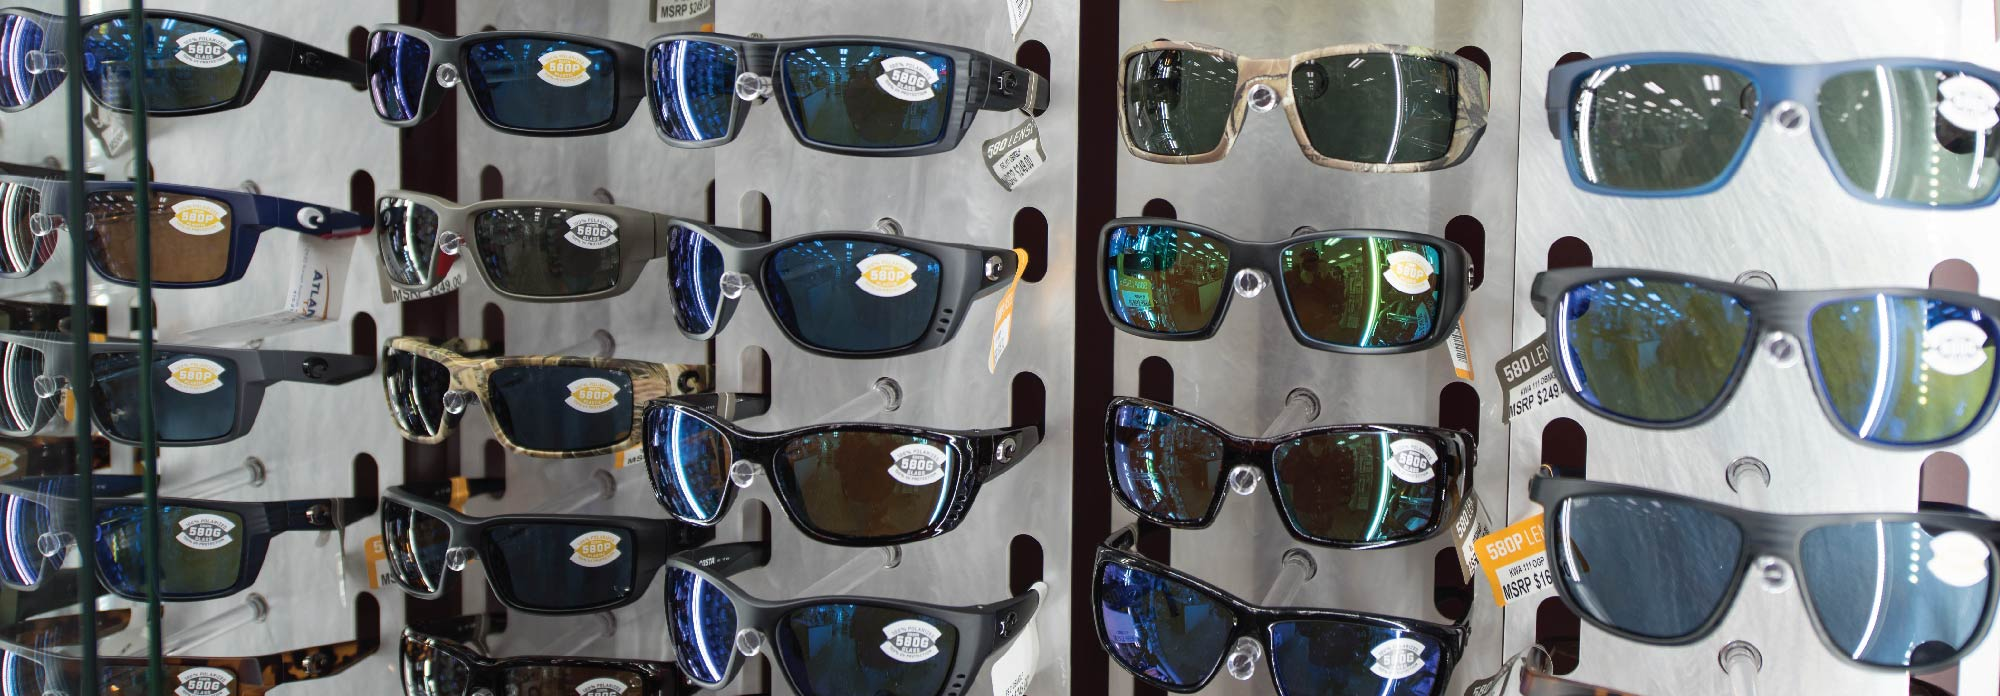 Different colored sunglasses for sale at Atlantic Tackle